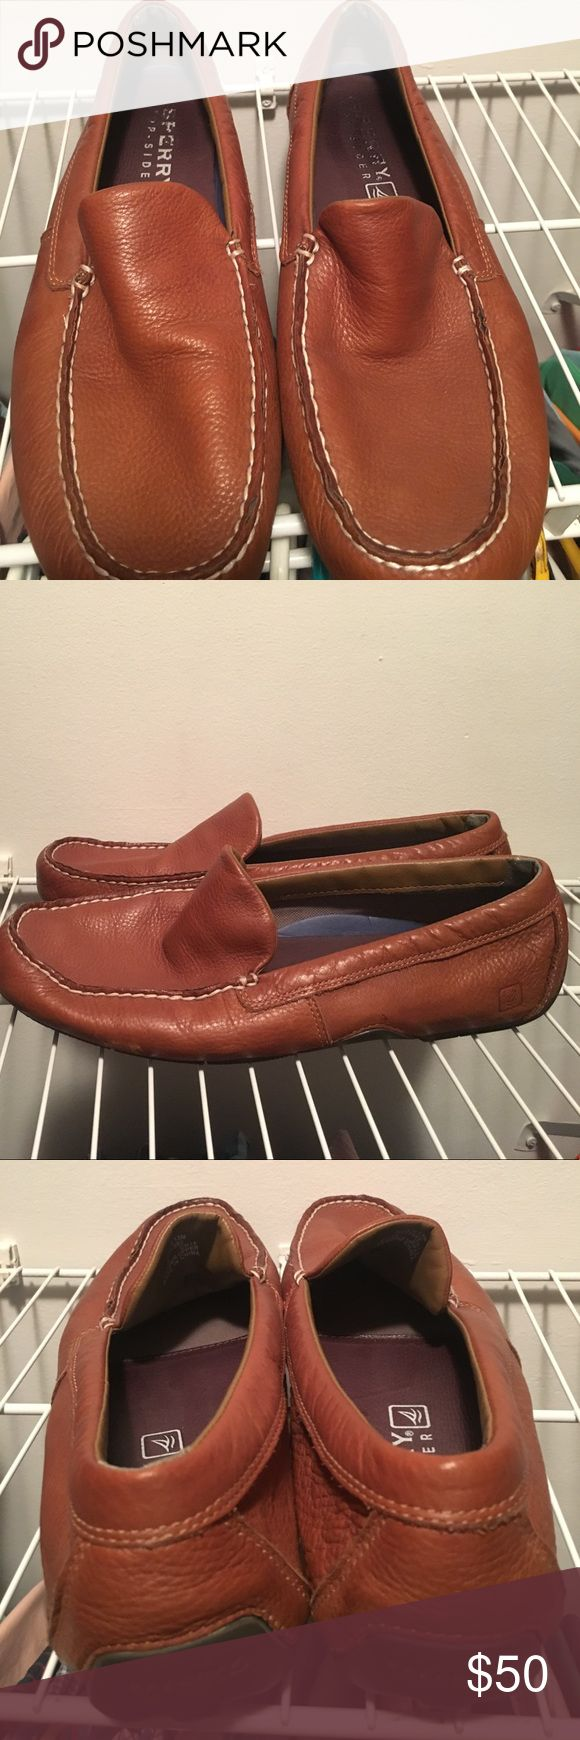 Men's Sperry Top Sider Loafers Barely worn! Men's tan Sperry Top Sider Loafers. Sperry Top-Sider Shoes Loafers & Slip-Ons